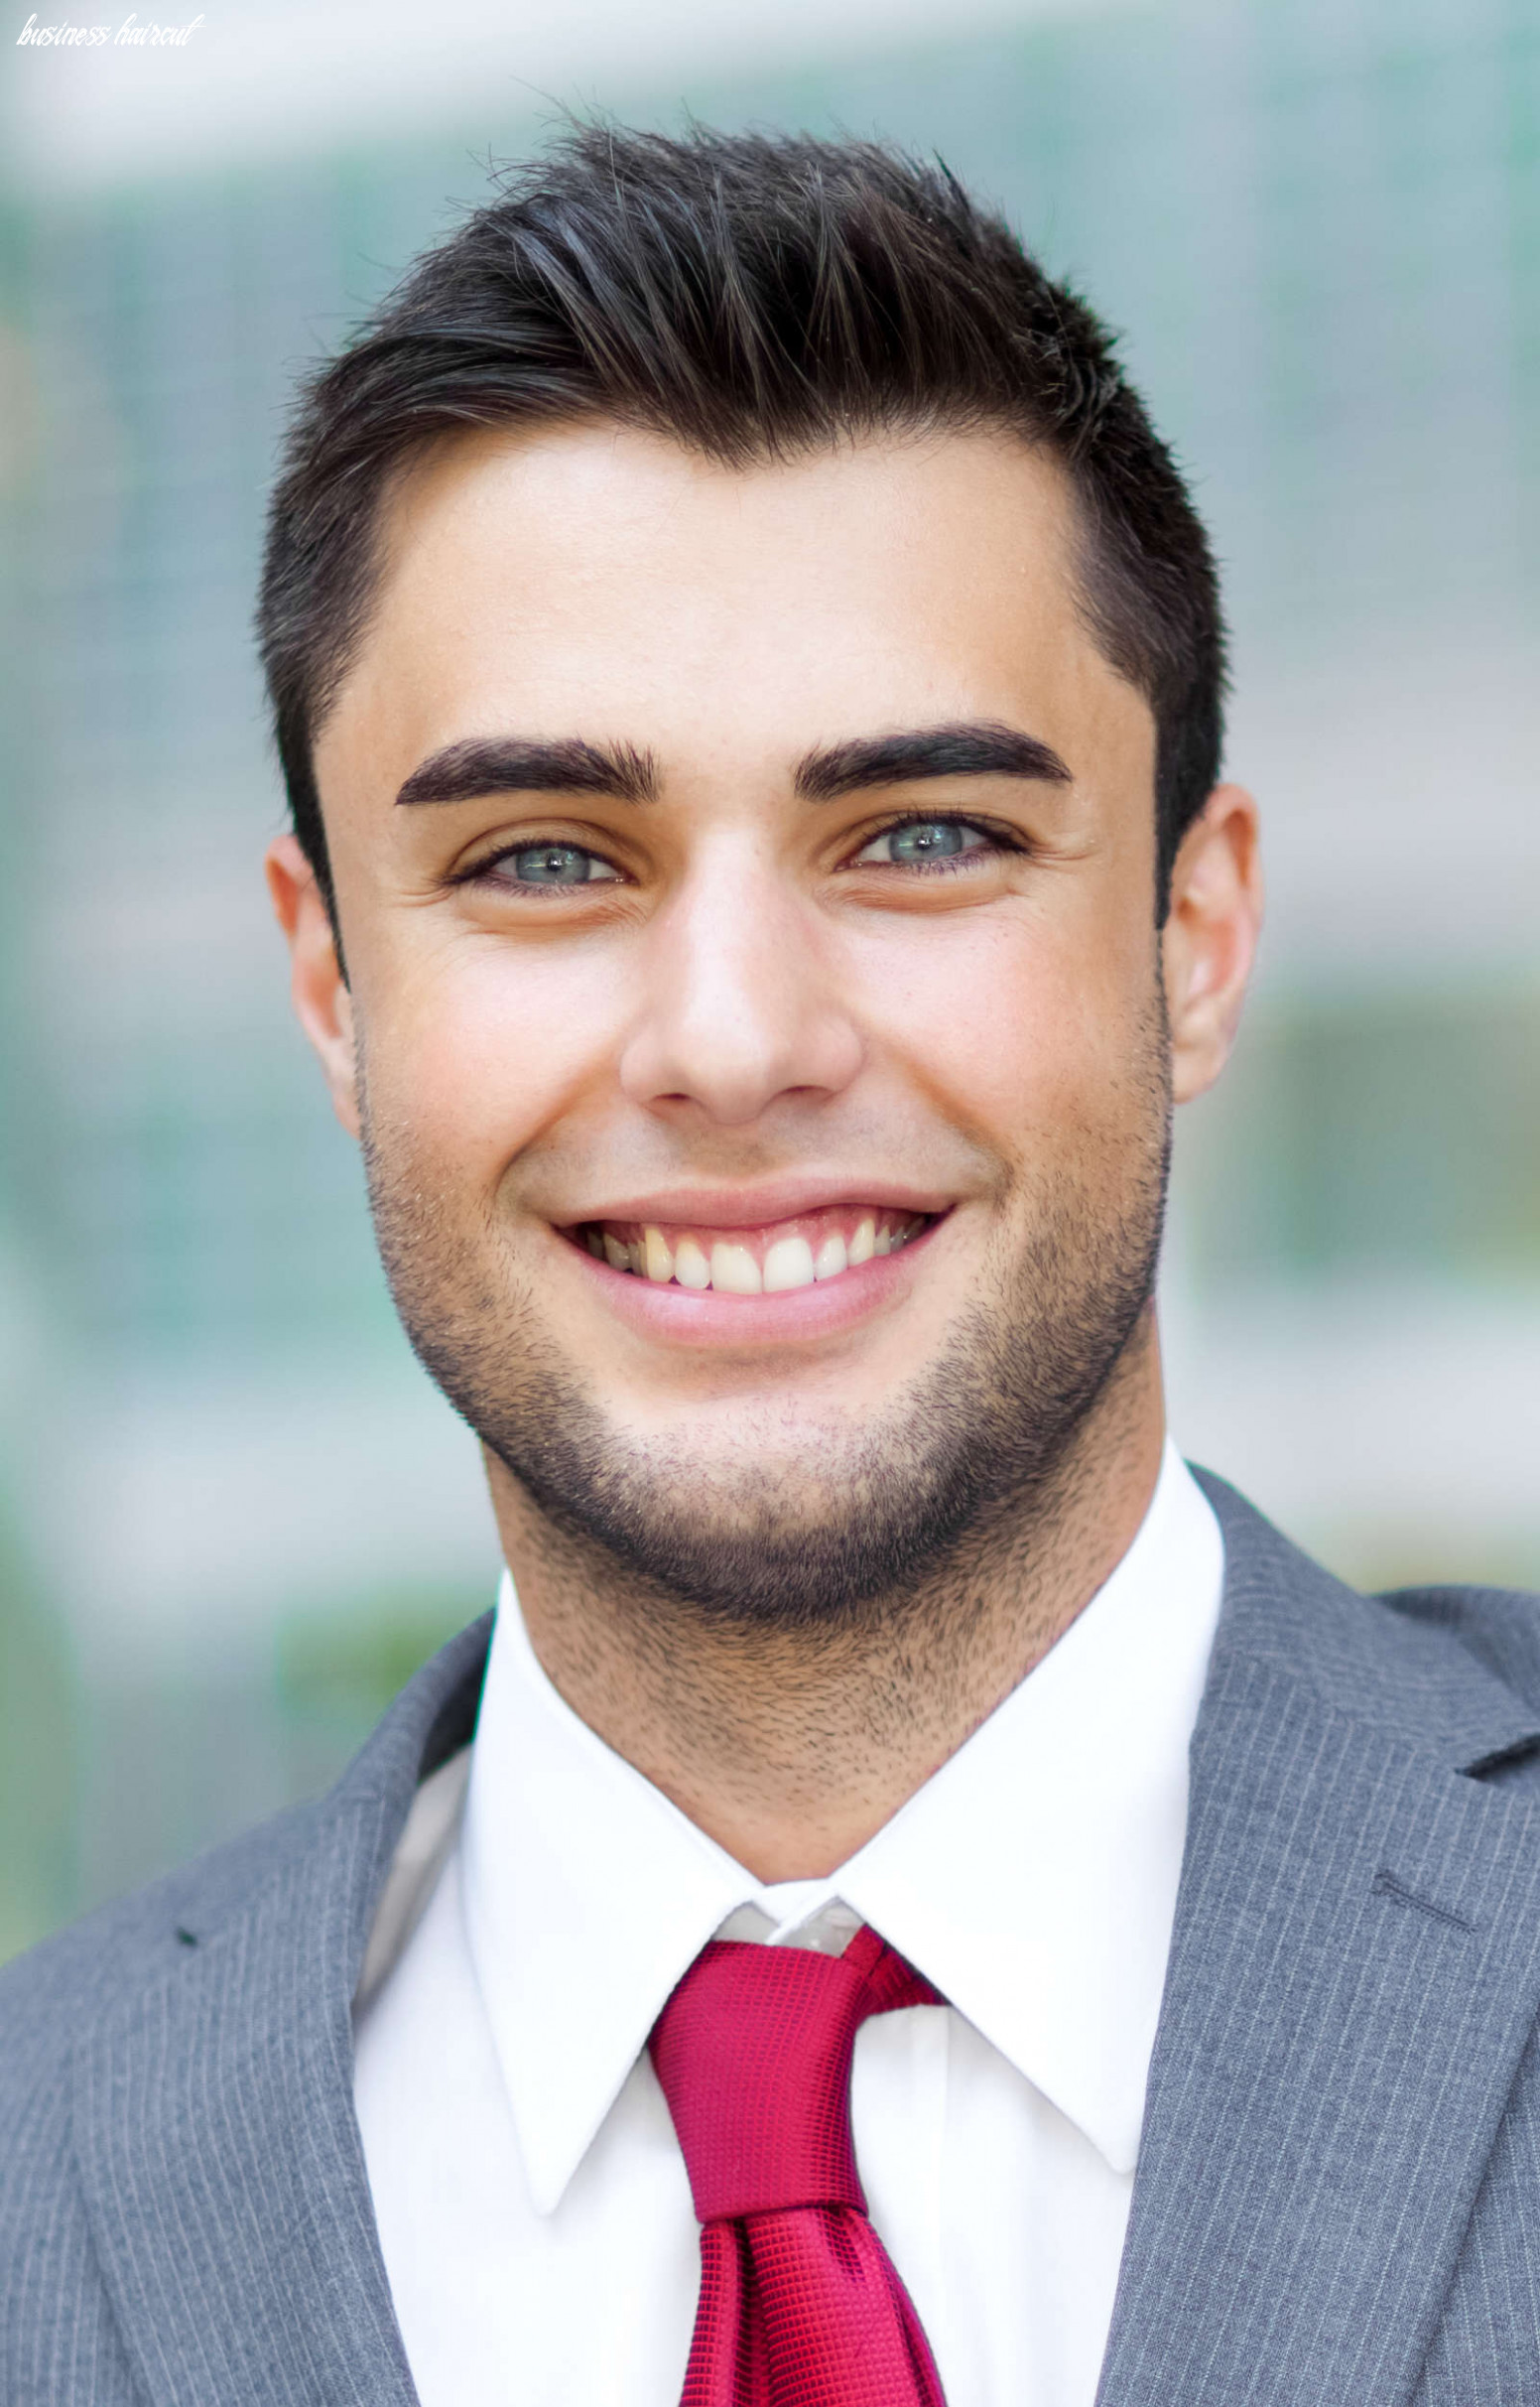 Top 11+ Business Hairstyles for Men